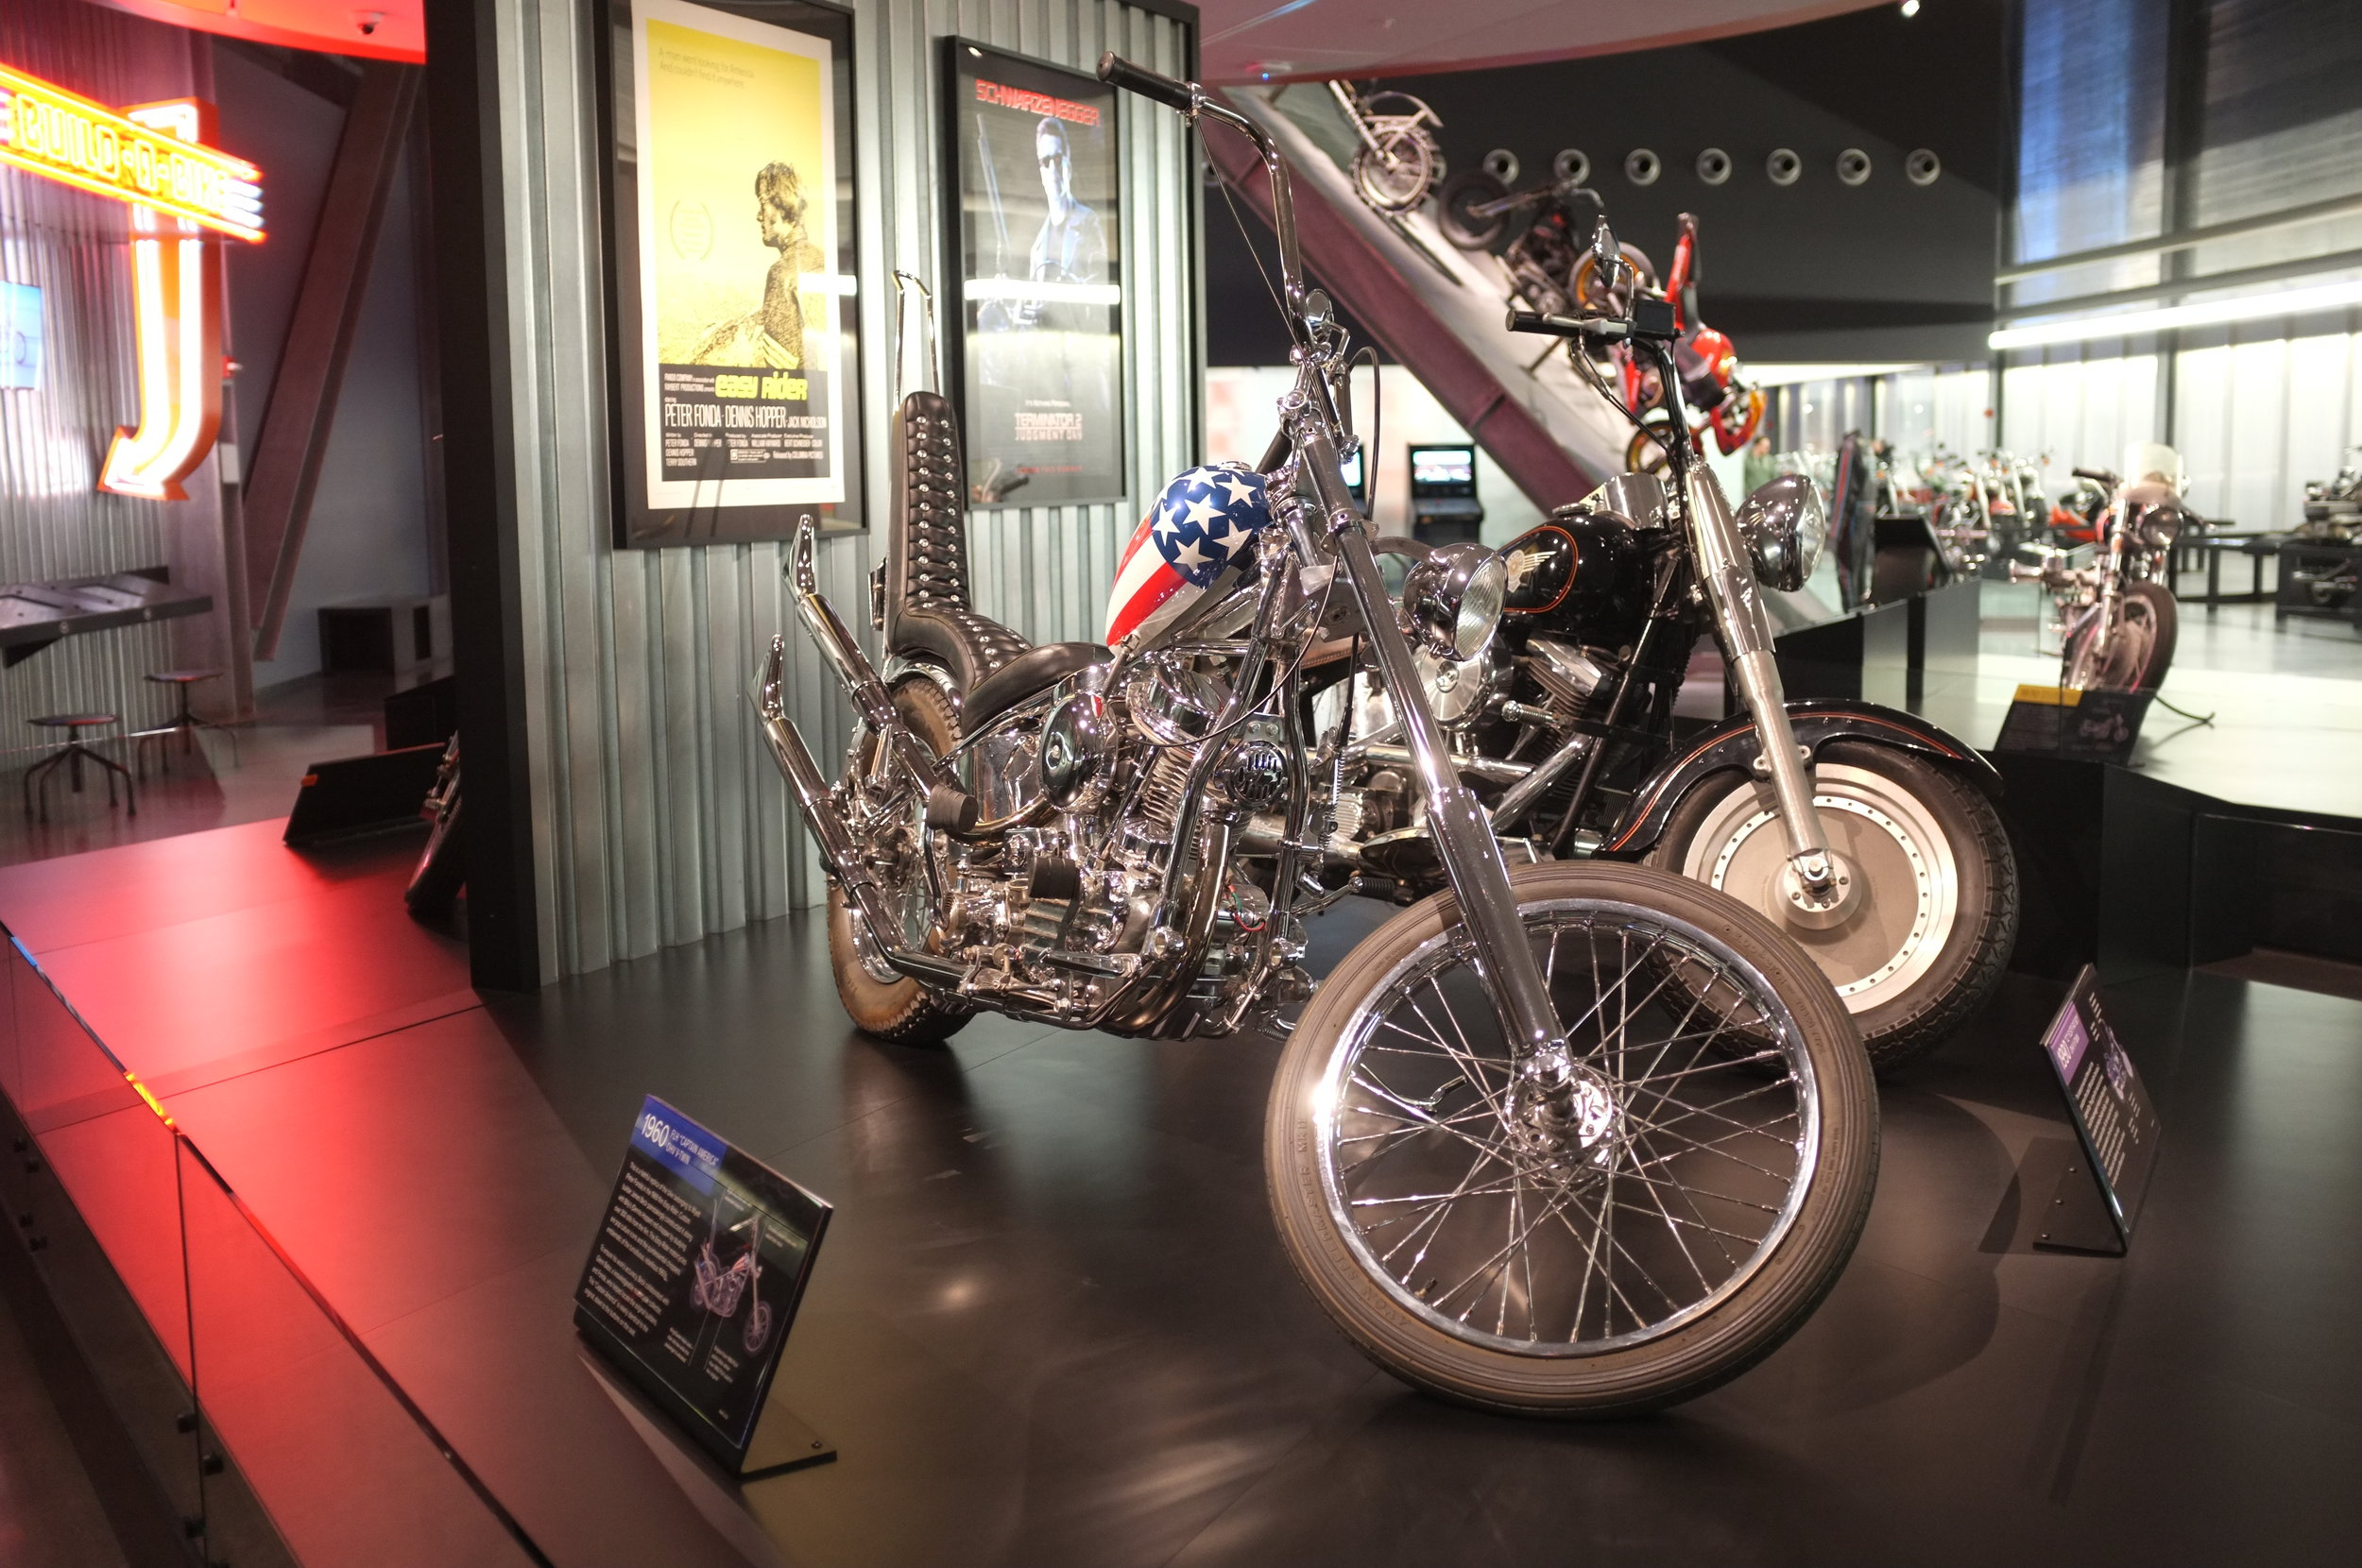 Captain America Panhead @ the Harley Davidson Museum in Milwaukee